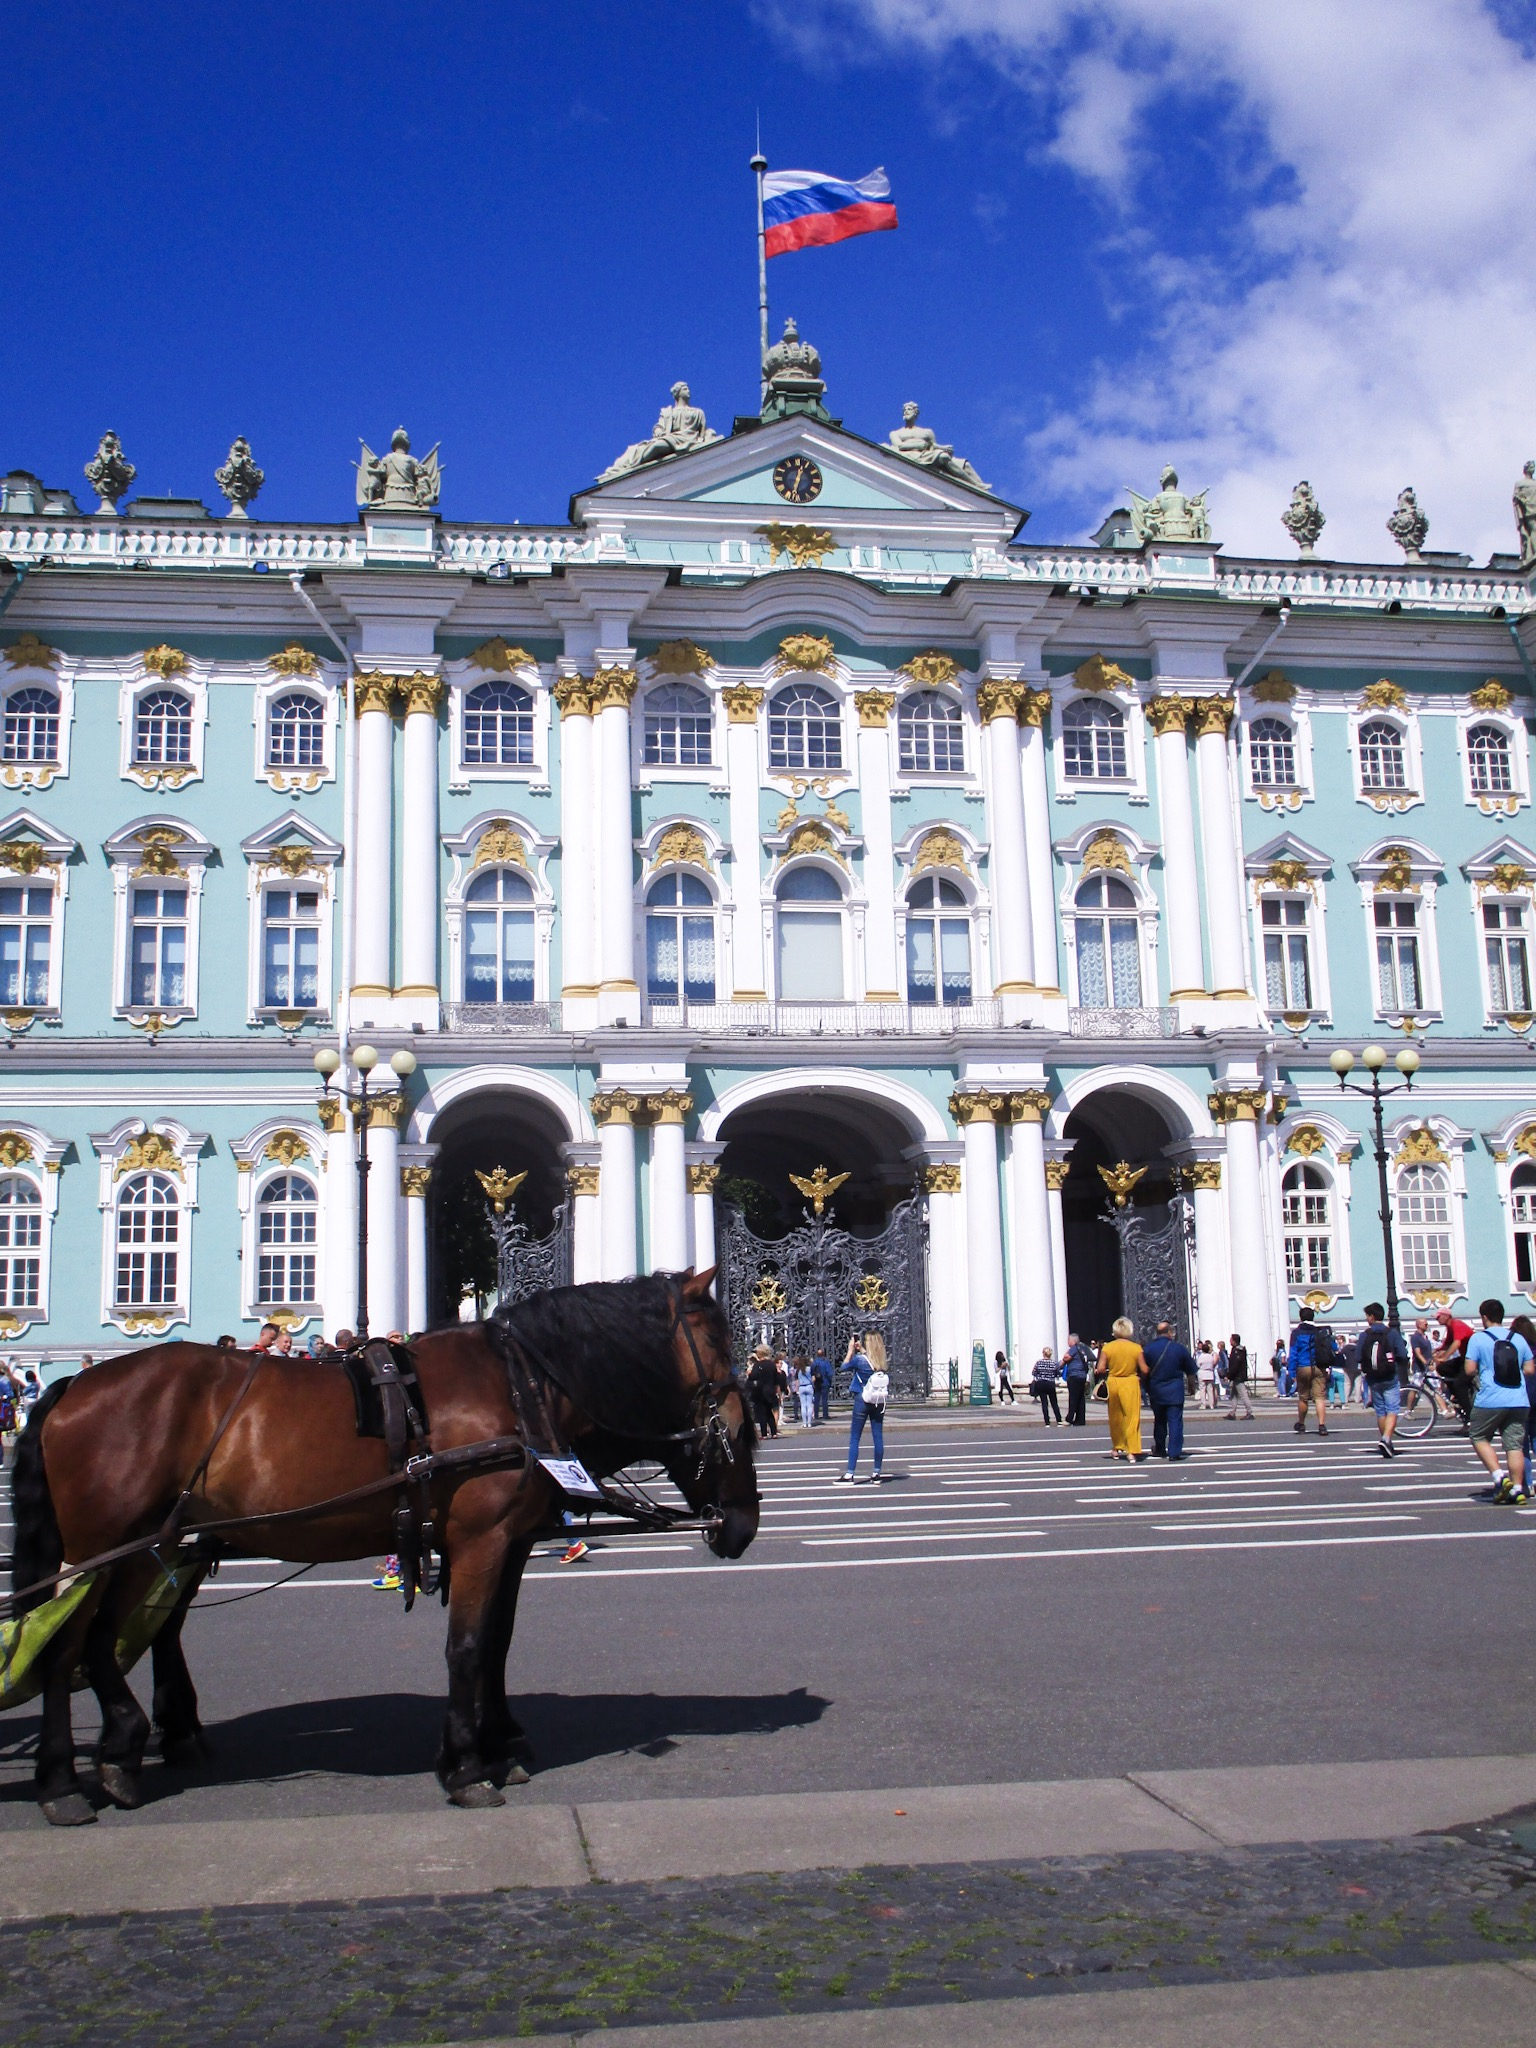 Horses in front of the Hermitage